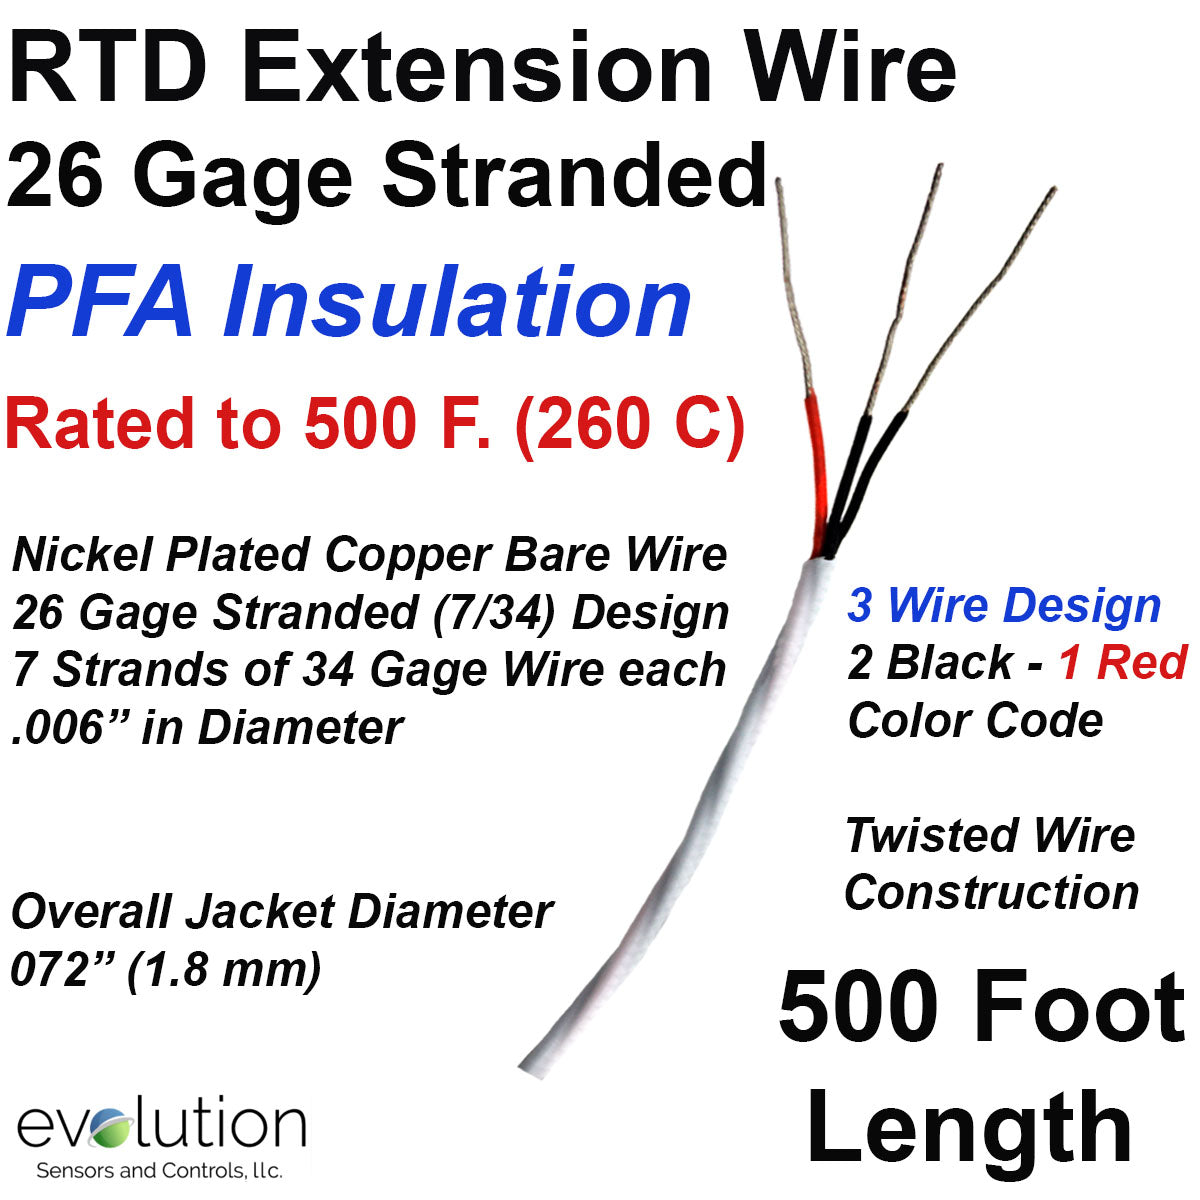 RTD Extension Wire 500 foot length 26 Gage Stranded 3- Wire Design ...